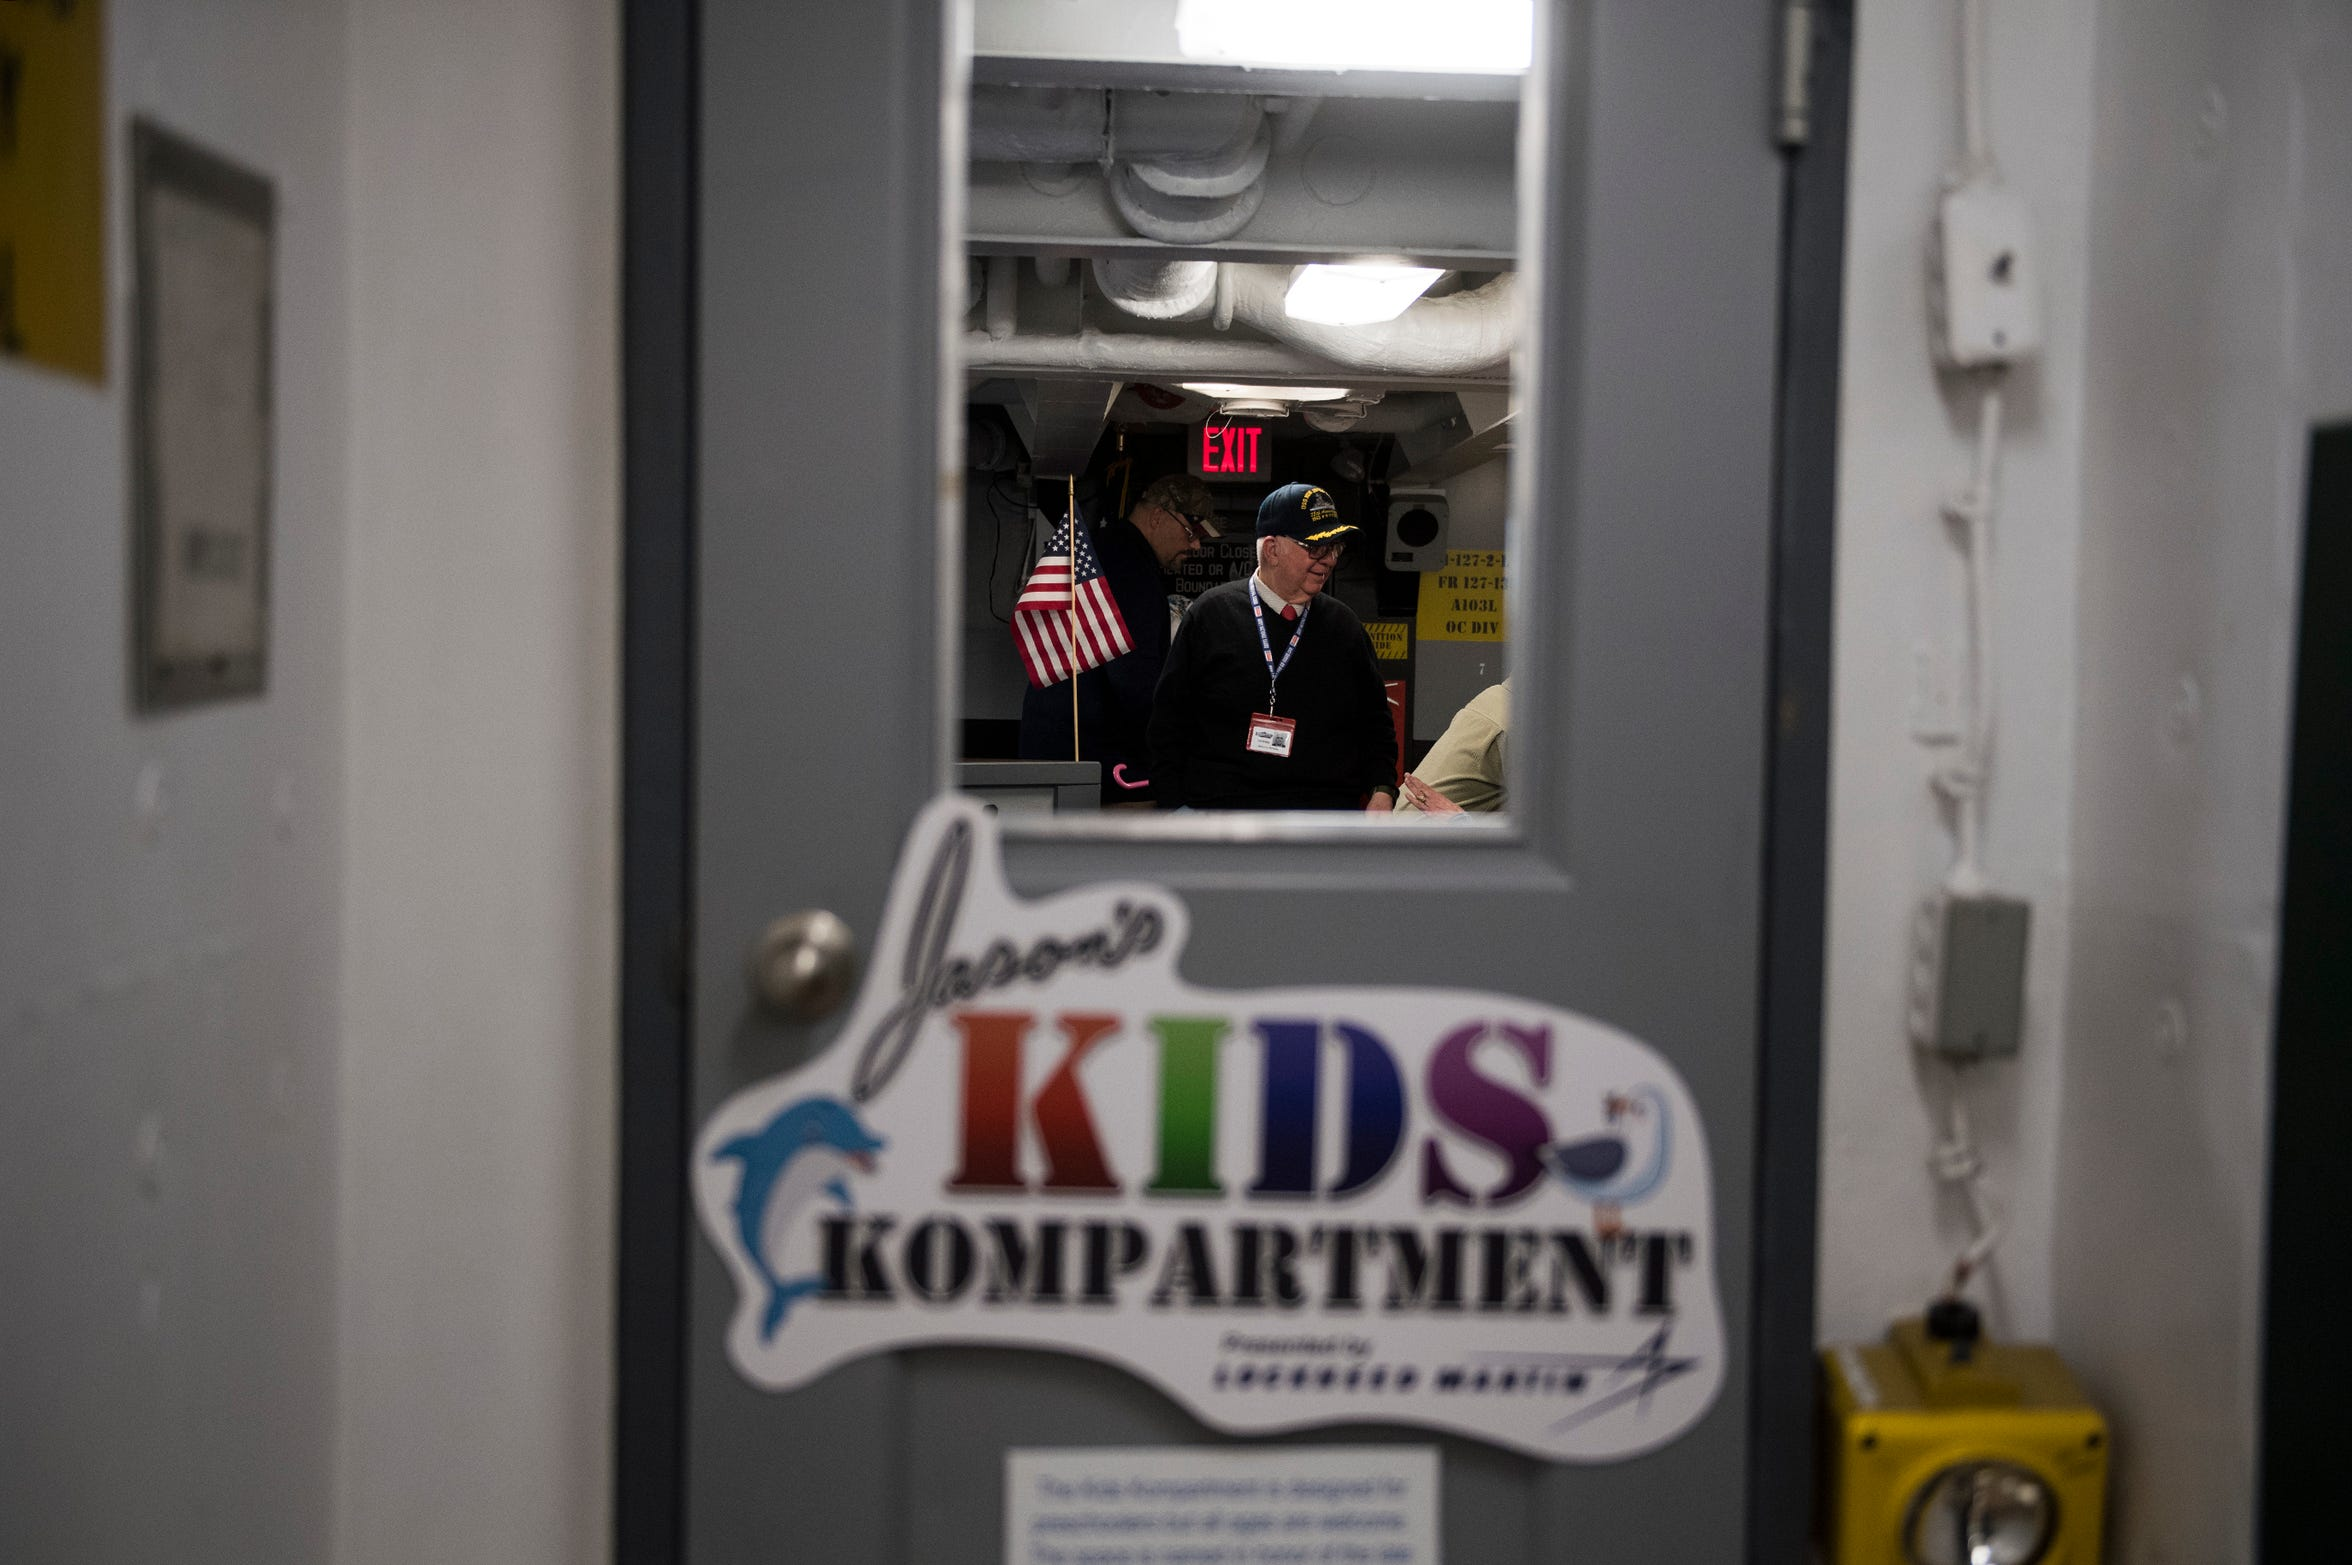 A peek into the entrance to the newly opened Jason's Kids Kompartment aboard the USS New Jersey battleship in Camden.